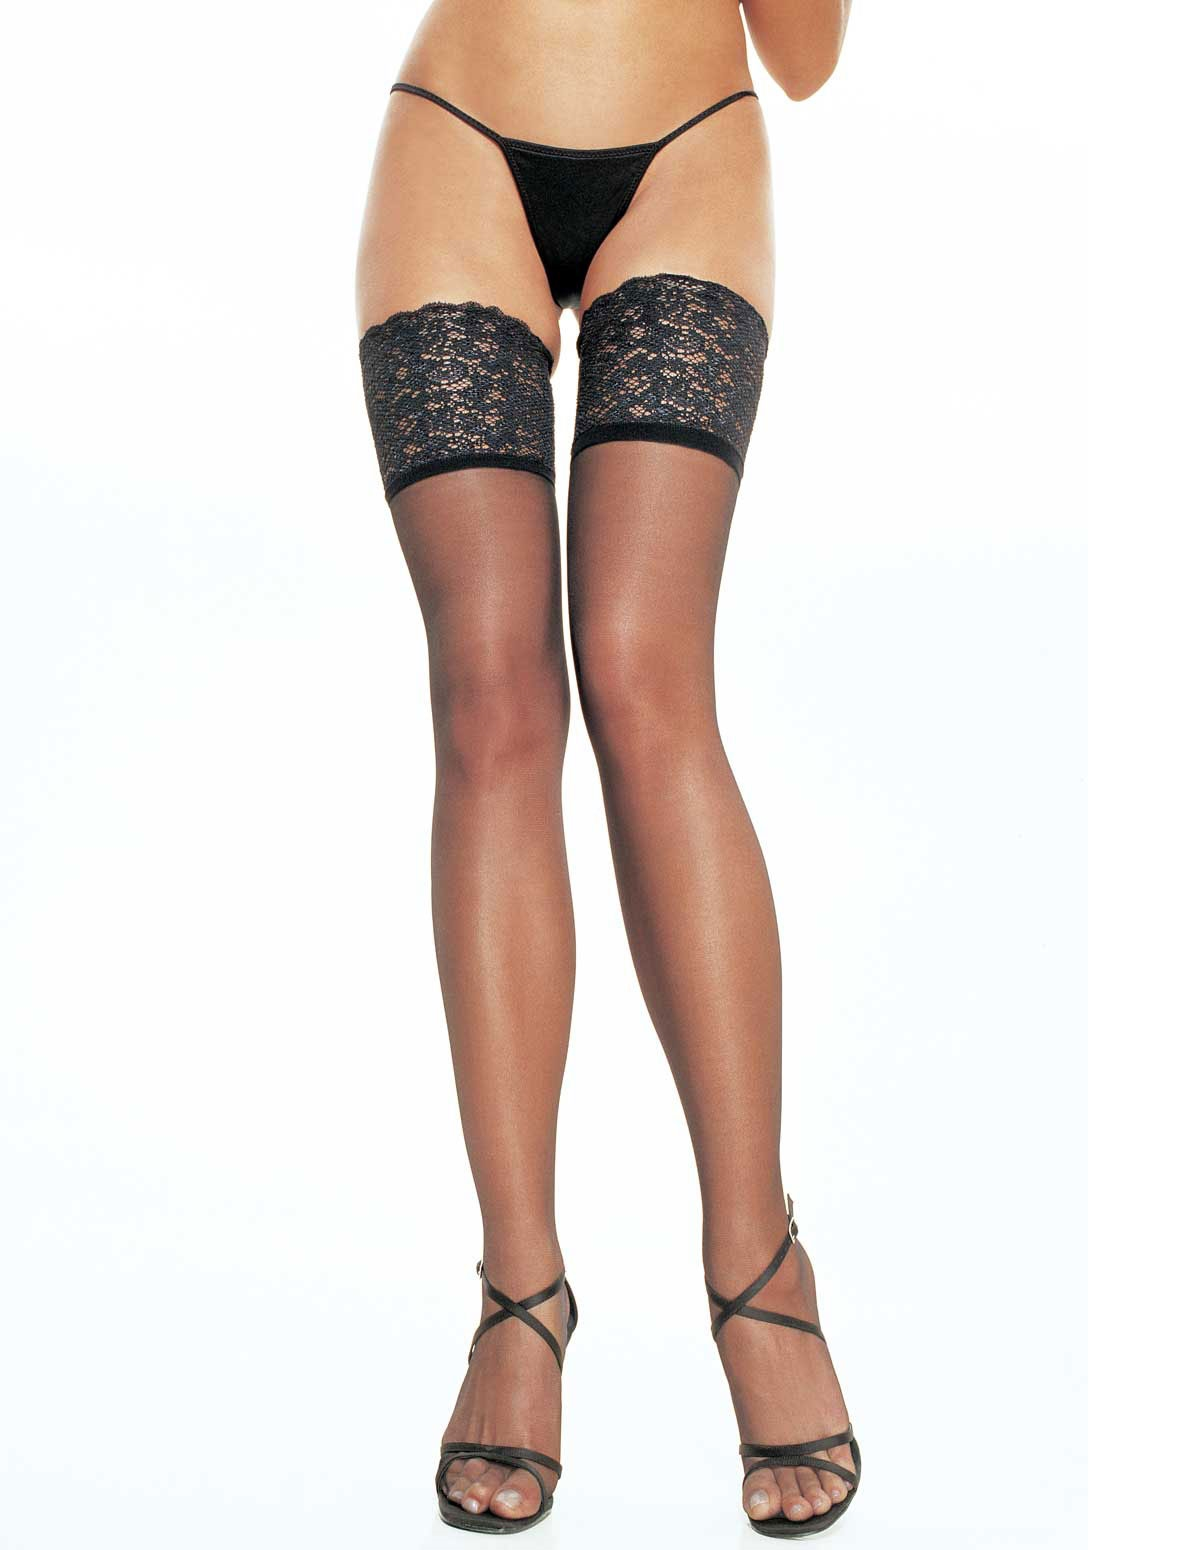 5 Inch Lace Top Thigh High